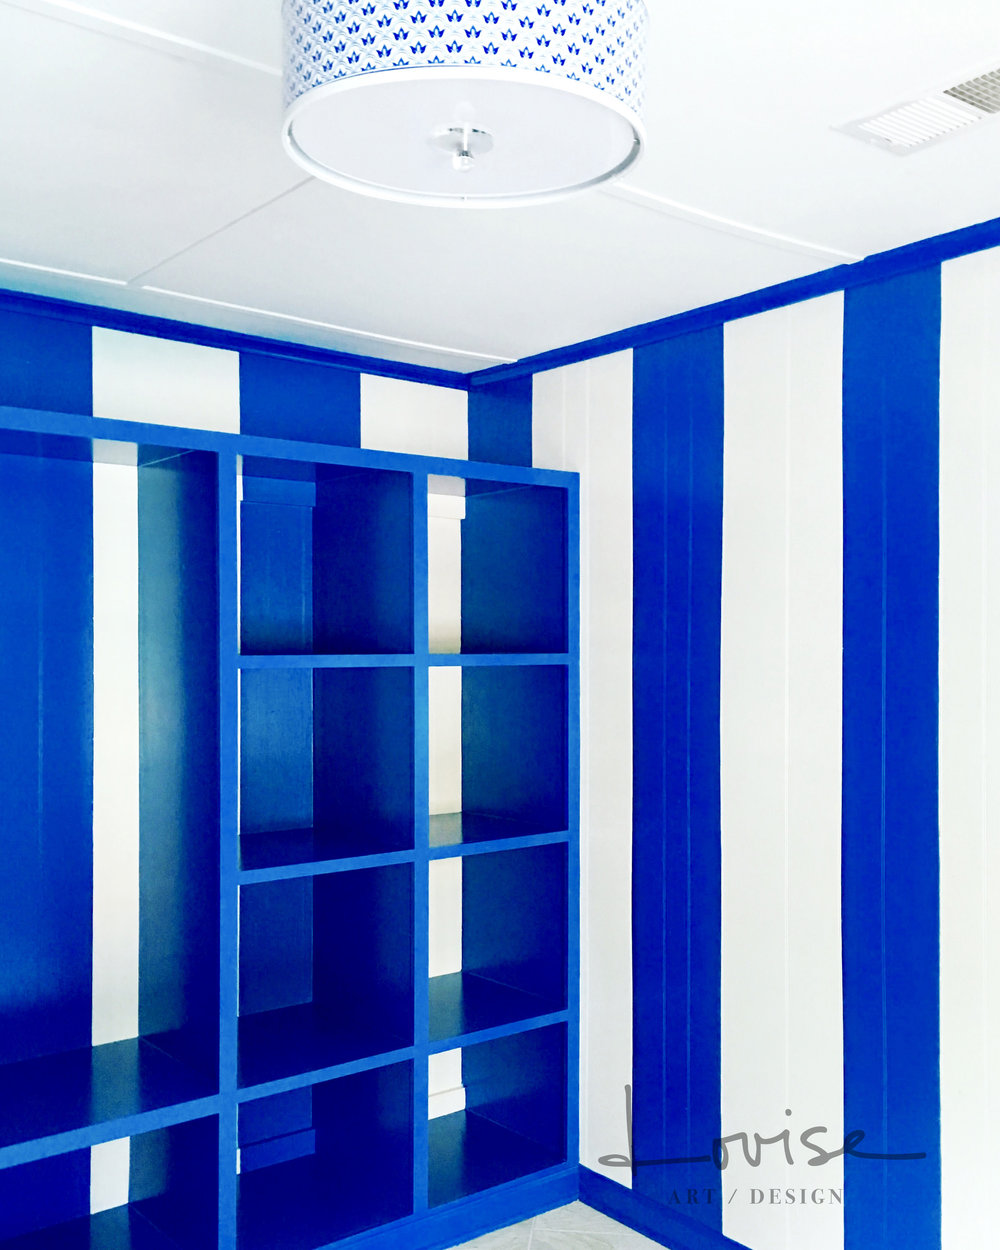 Pool house stripes in royal blue with French Provencal light fixture